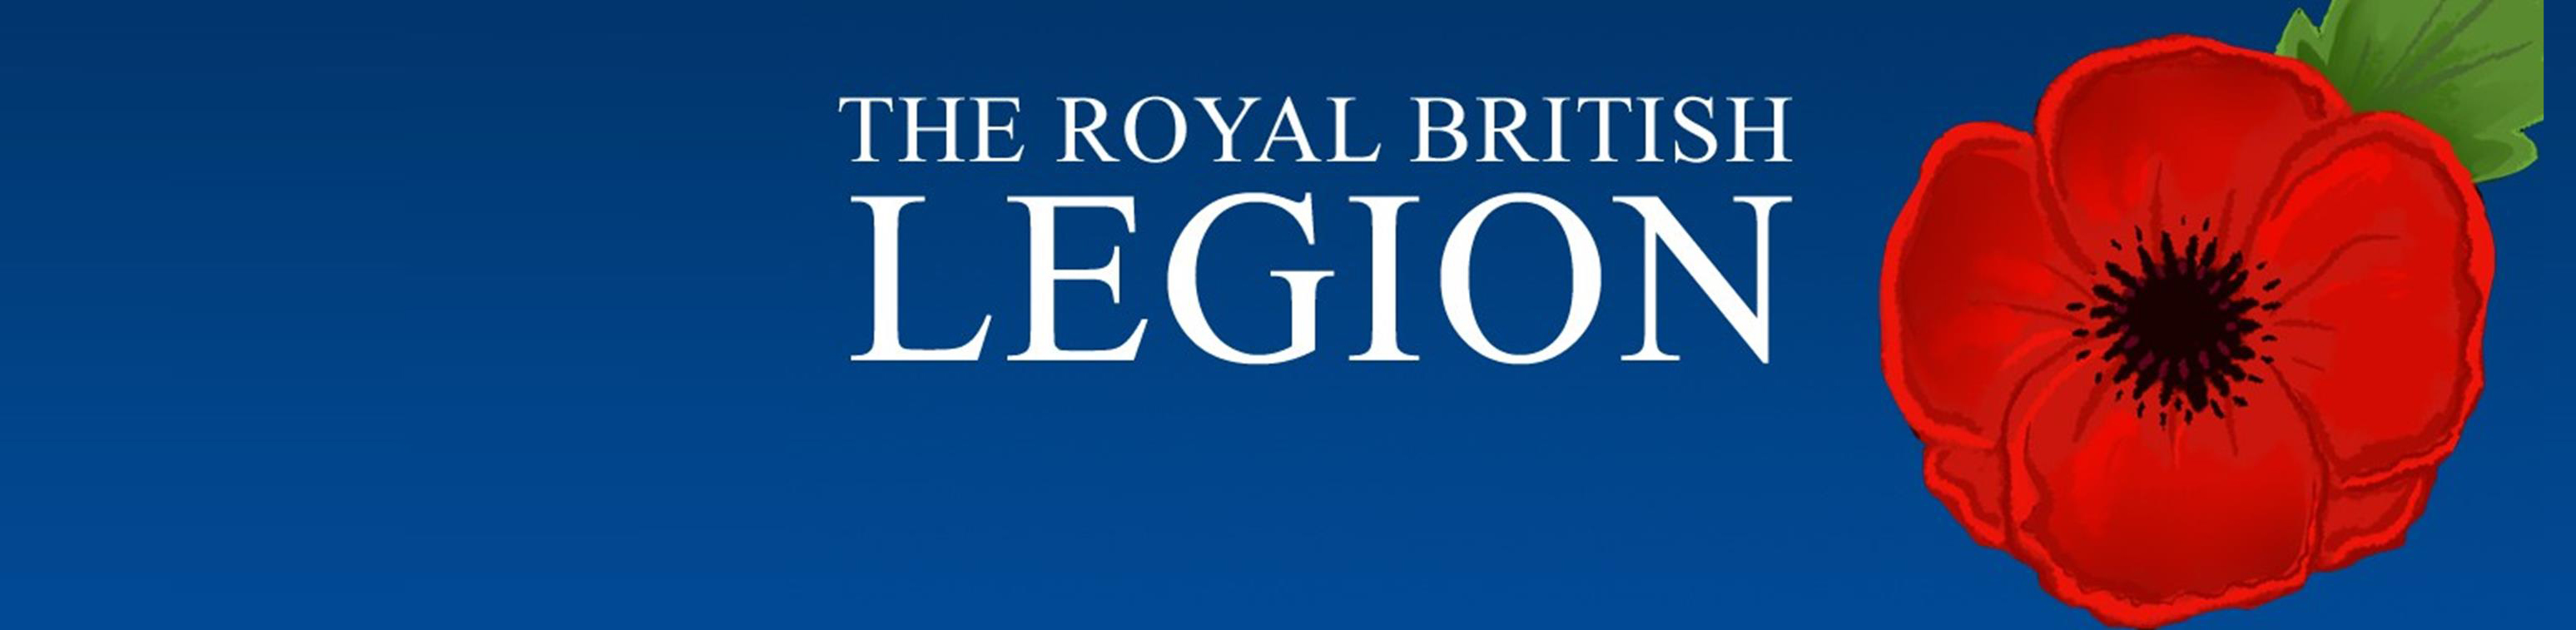 Grace & Favour royal british legion